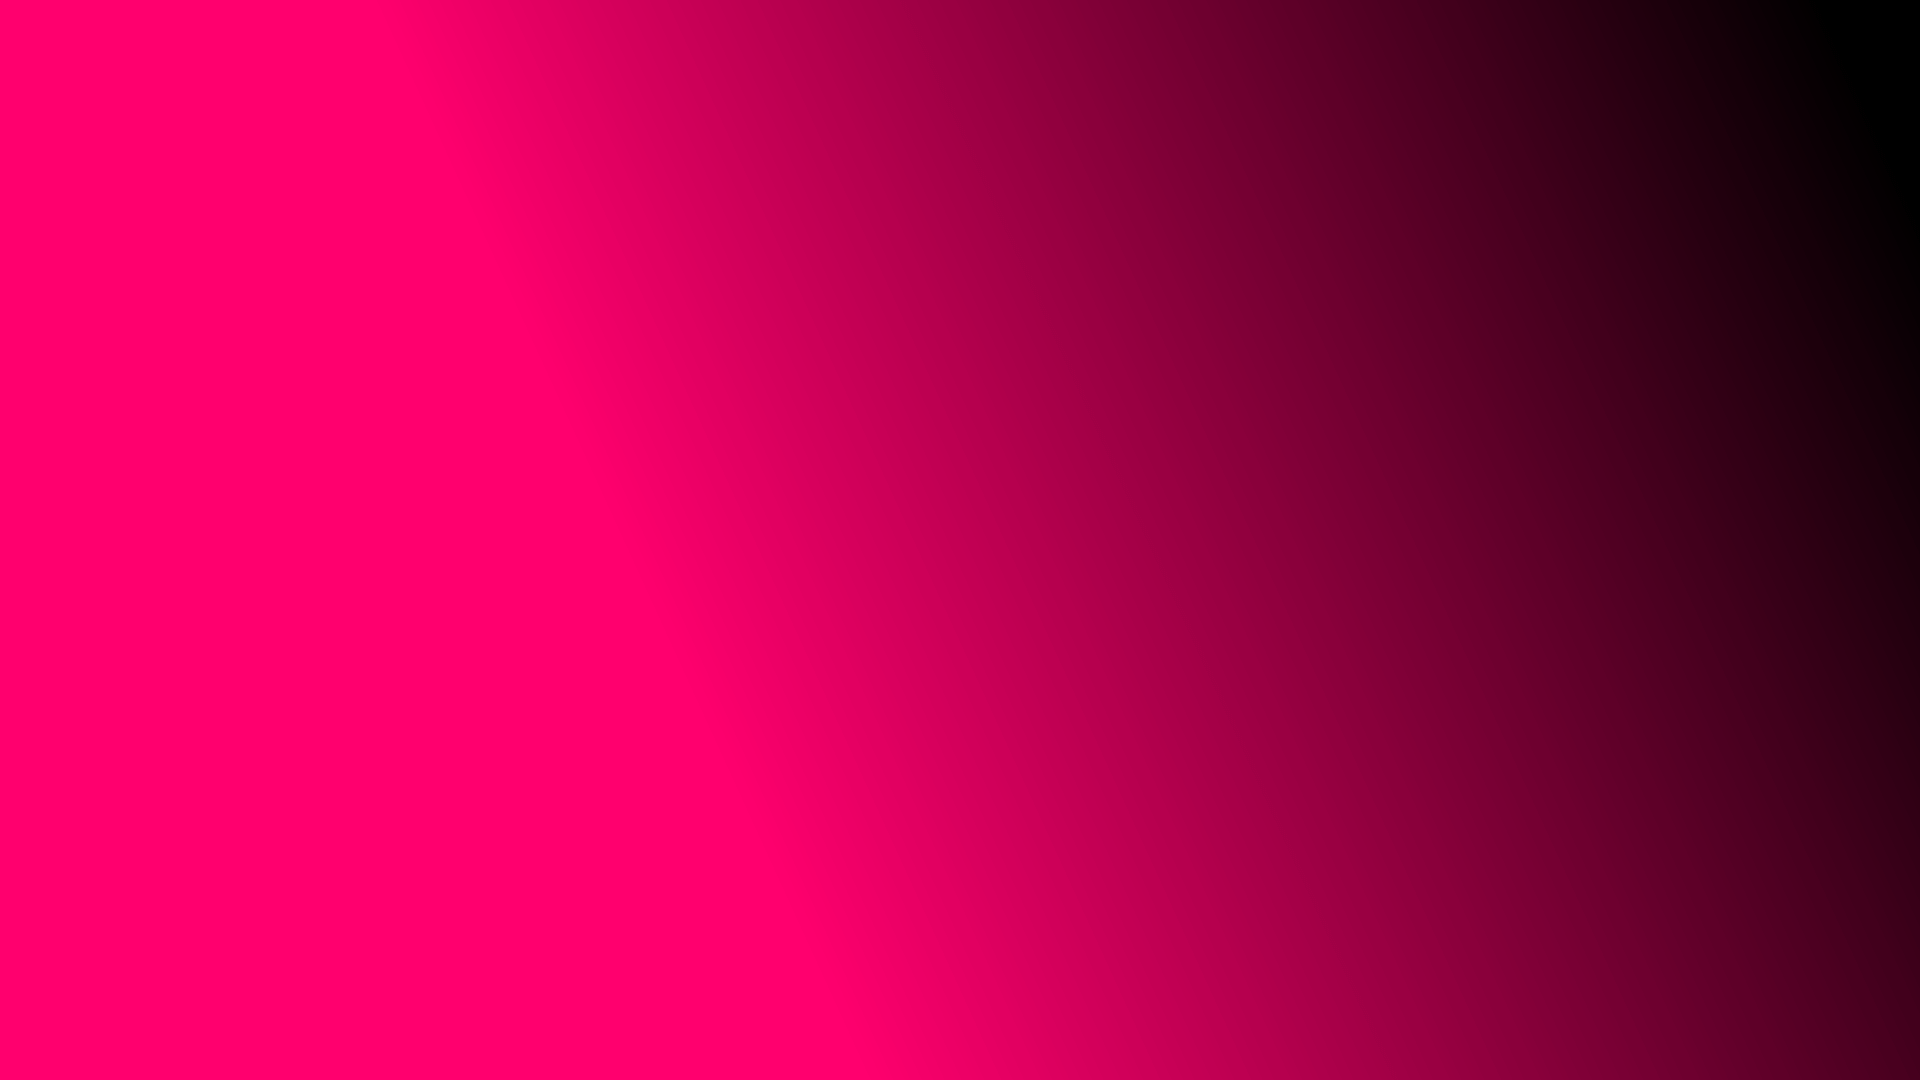 Pink Image For Backgrounds - Wallpaper Cave